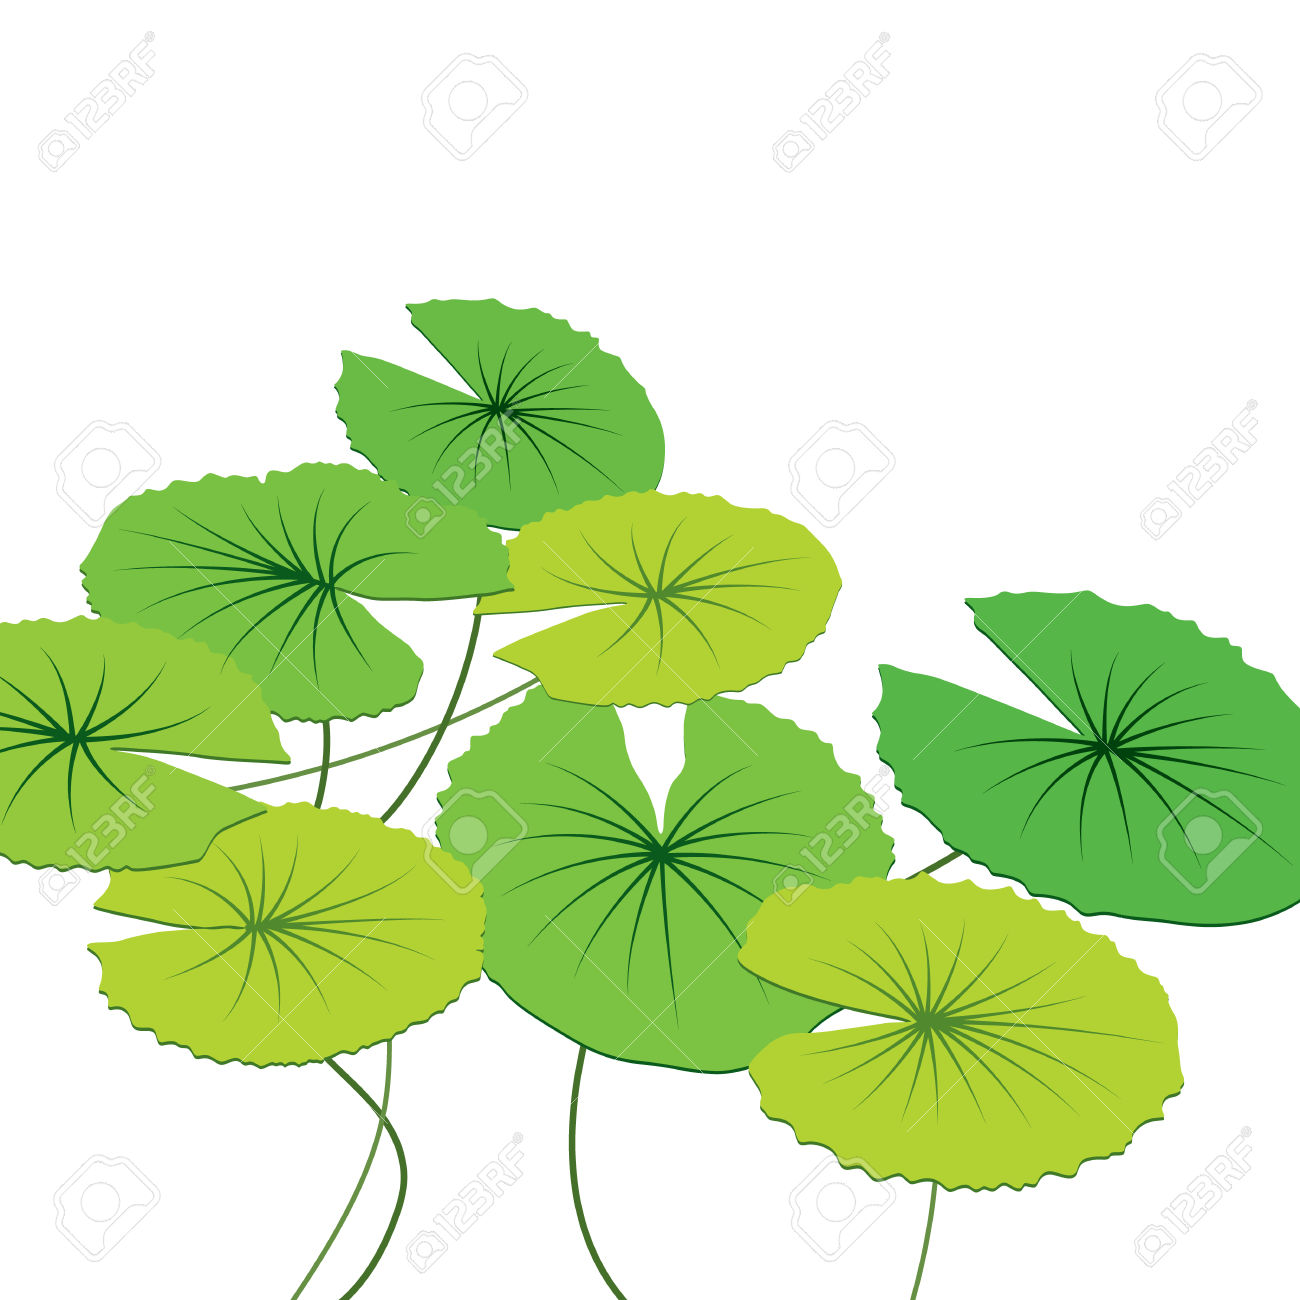 Lotus Leaves, Vector Illustration Royalty Free Cliparts, Vectors.